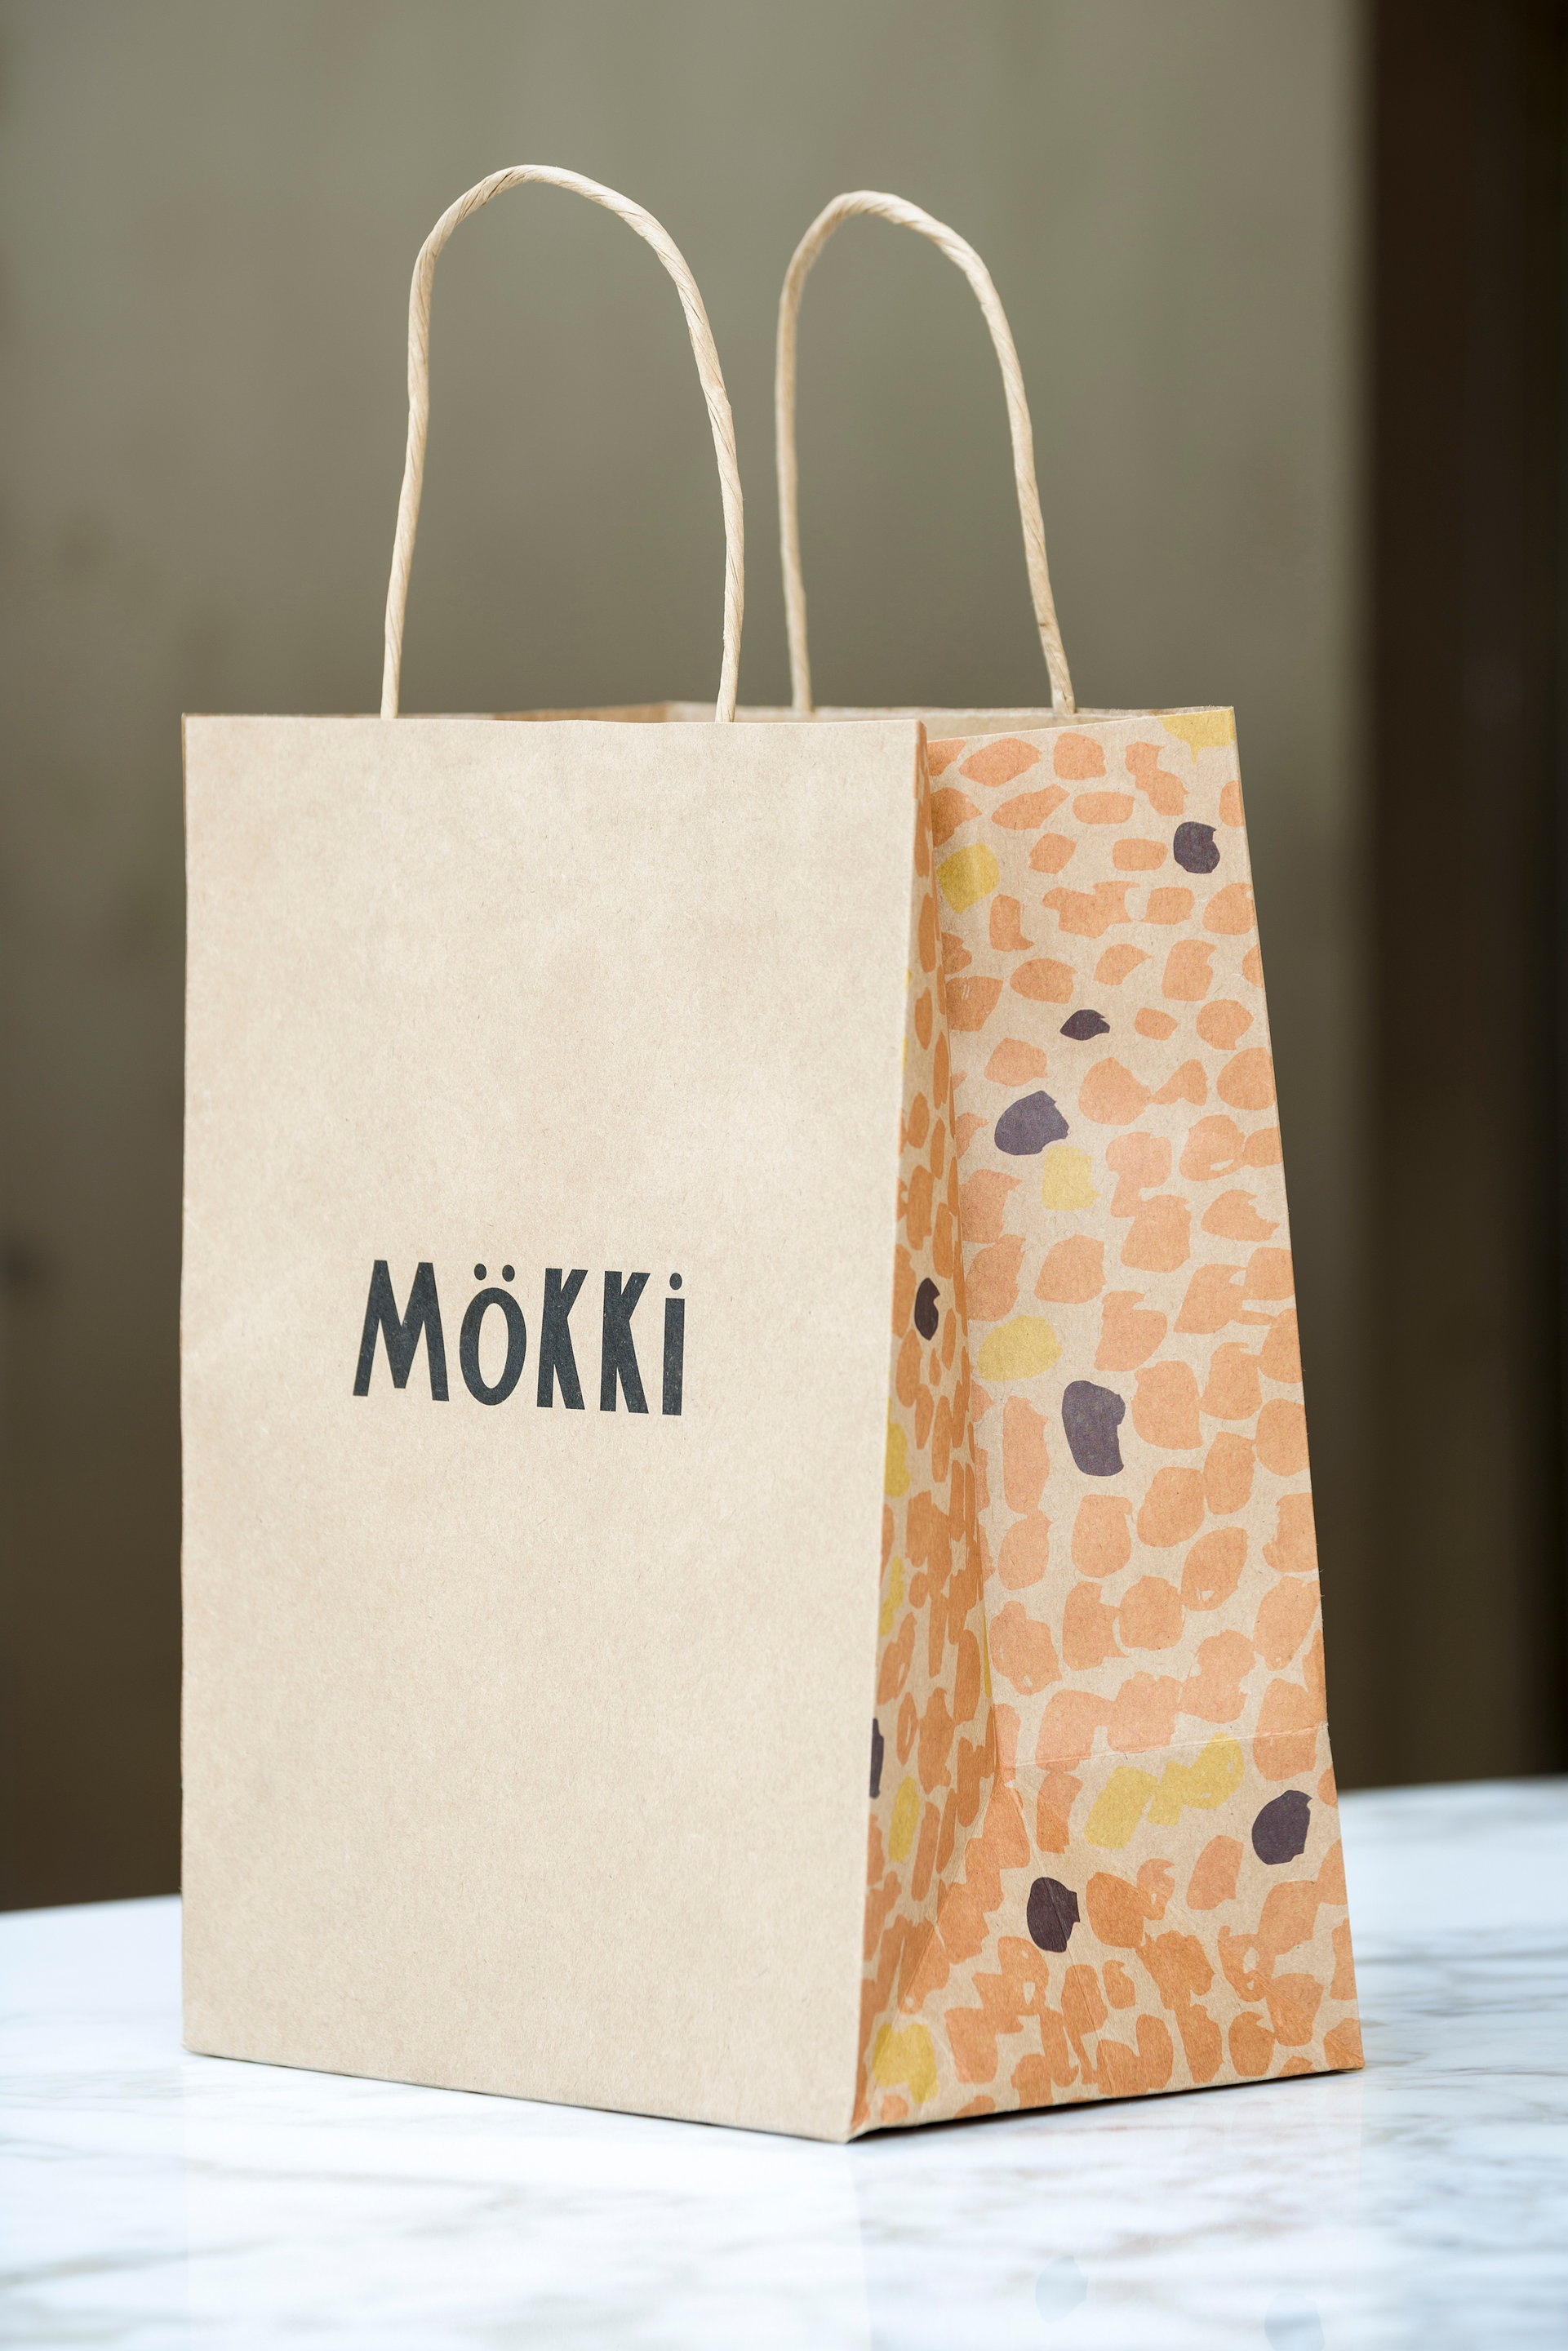 Mokki by Blacksheep